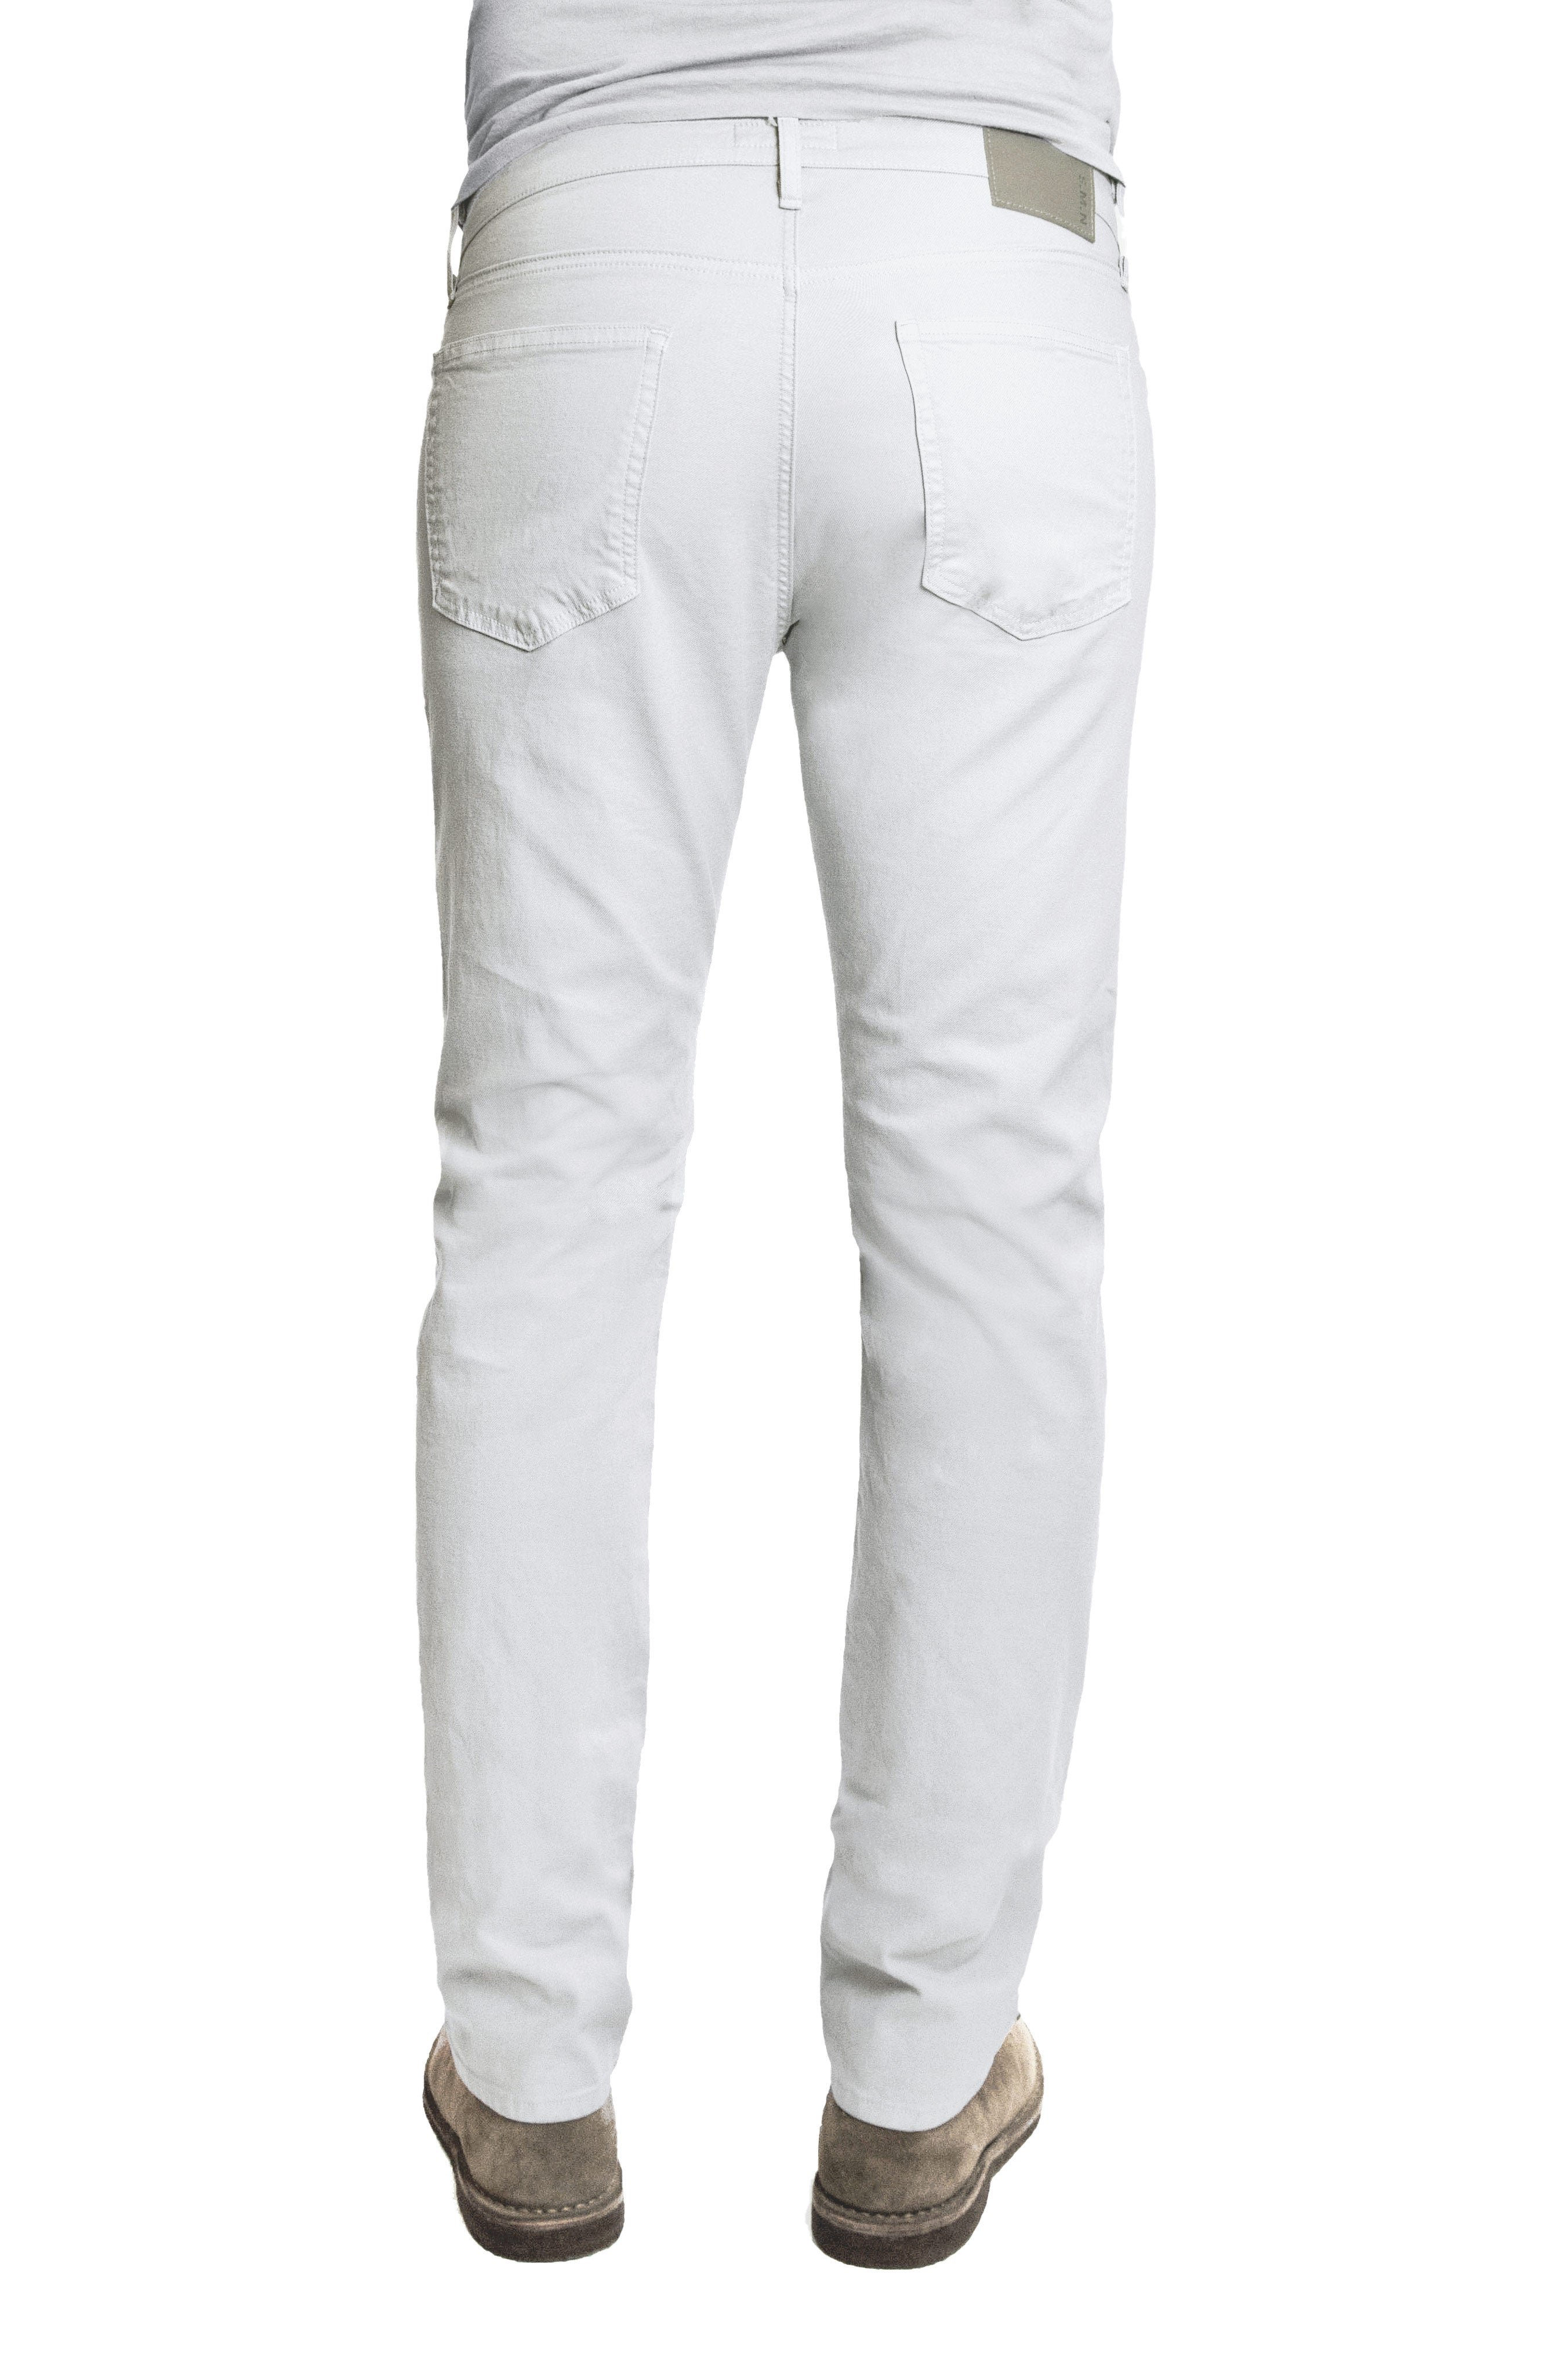 Back of S.M.N Studio's Hunter in White Men's Jeans - A slim fit white jean in a comfort stretch denim